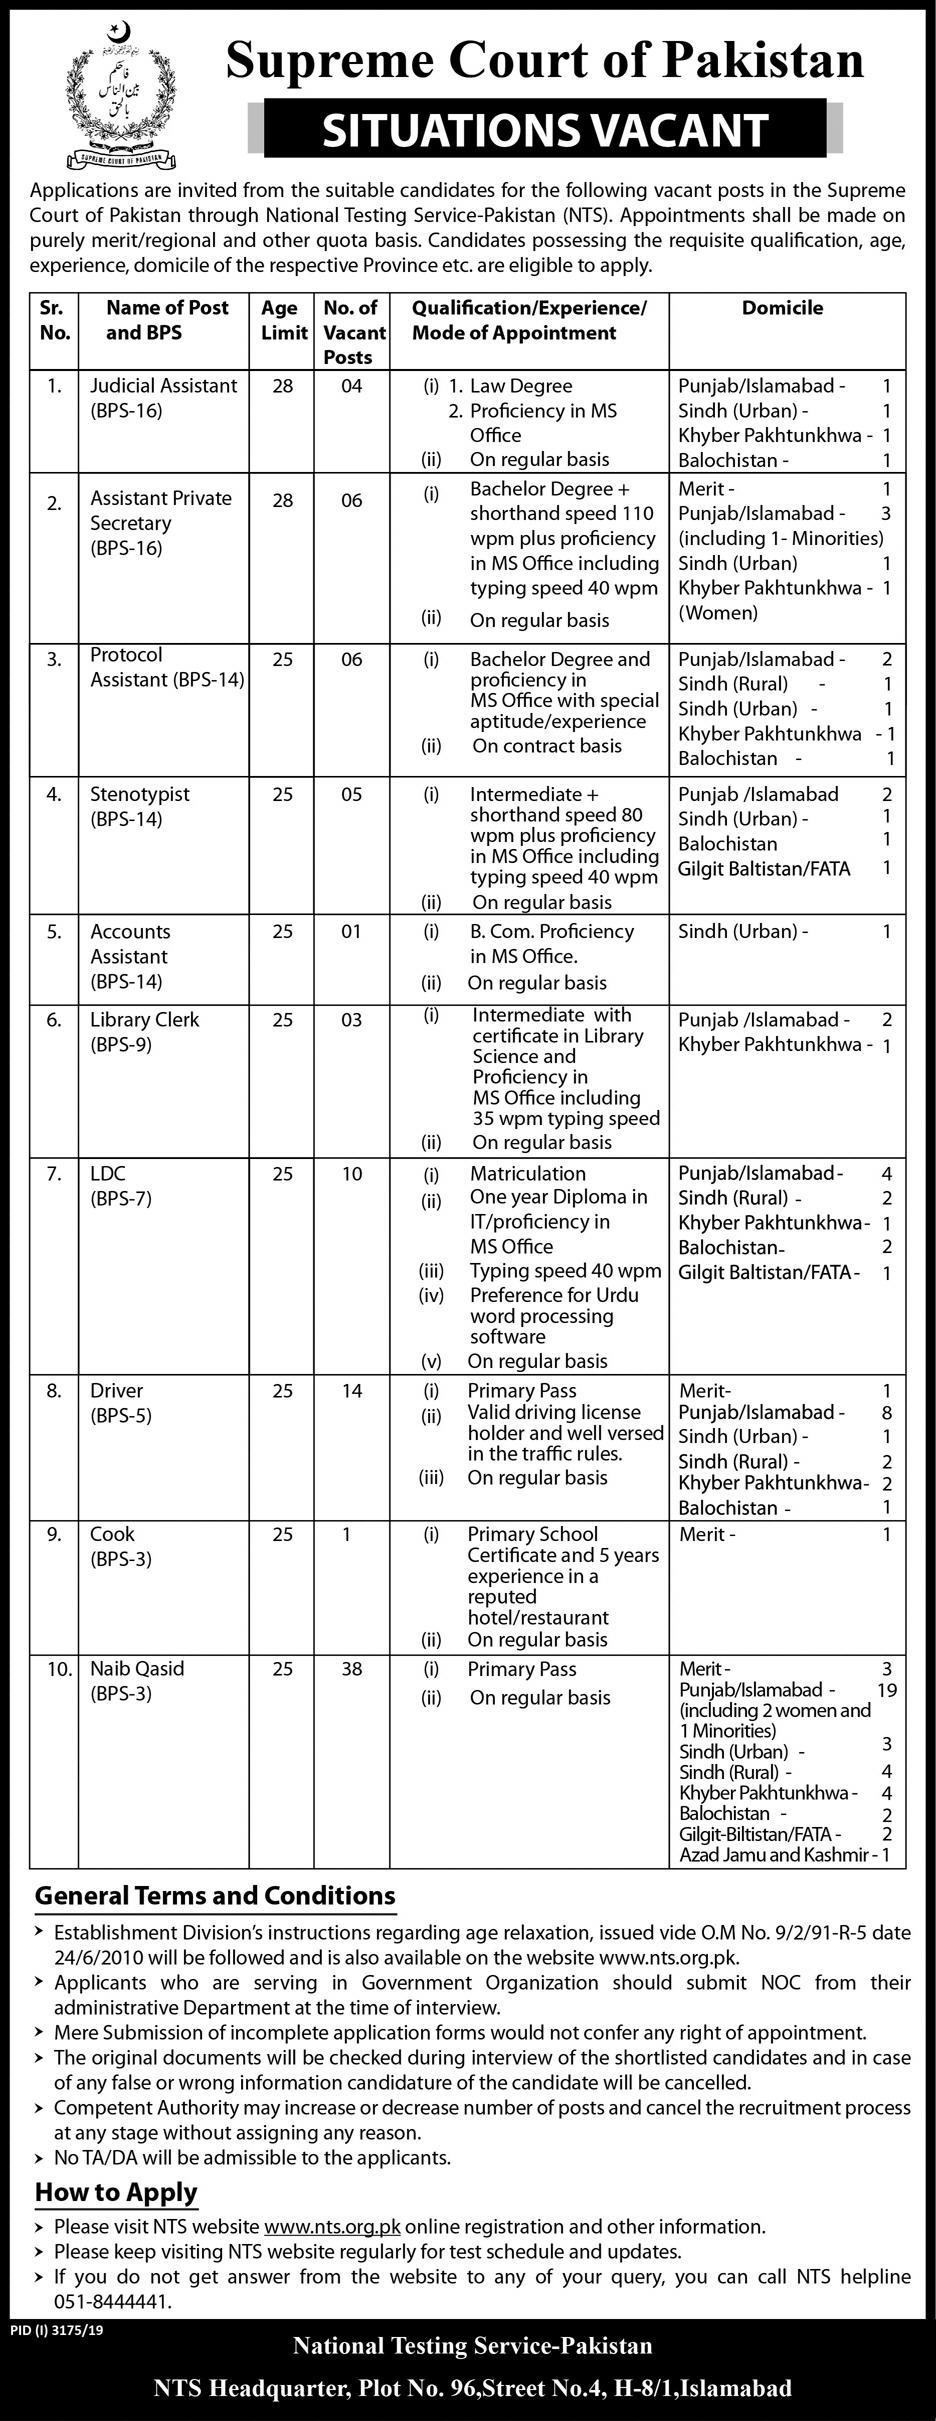 Vacancies in Supreme Court of Pakistan through NTS